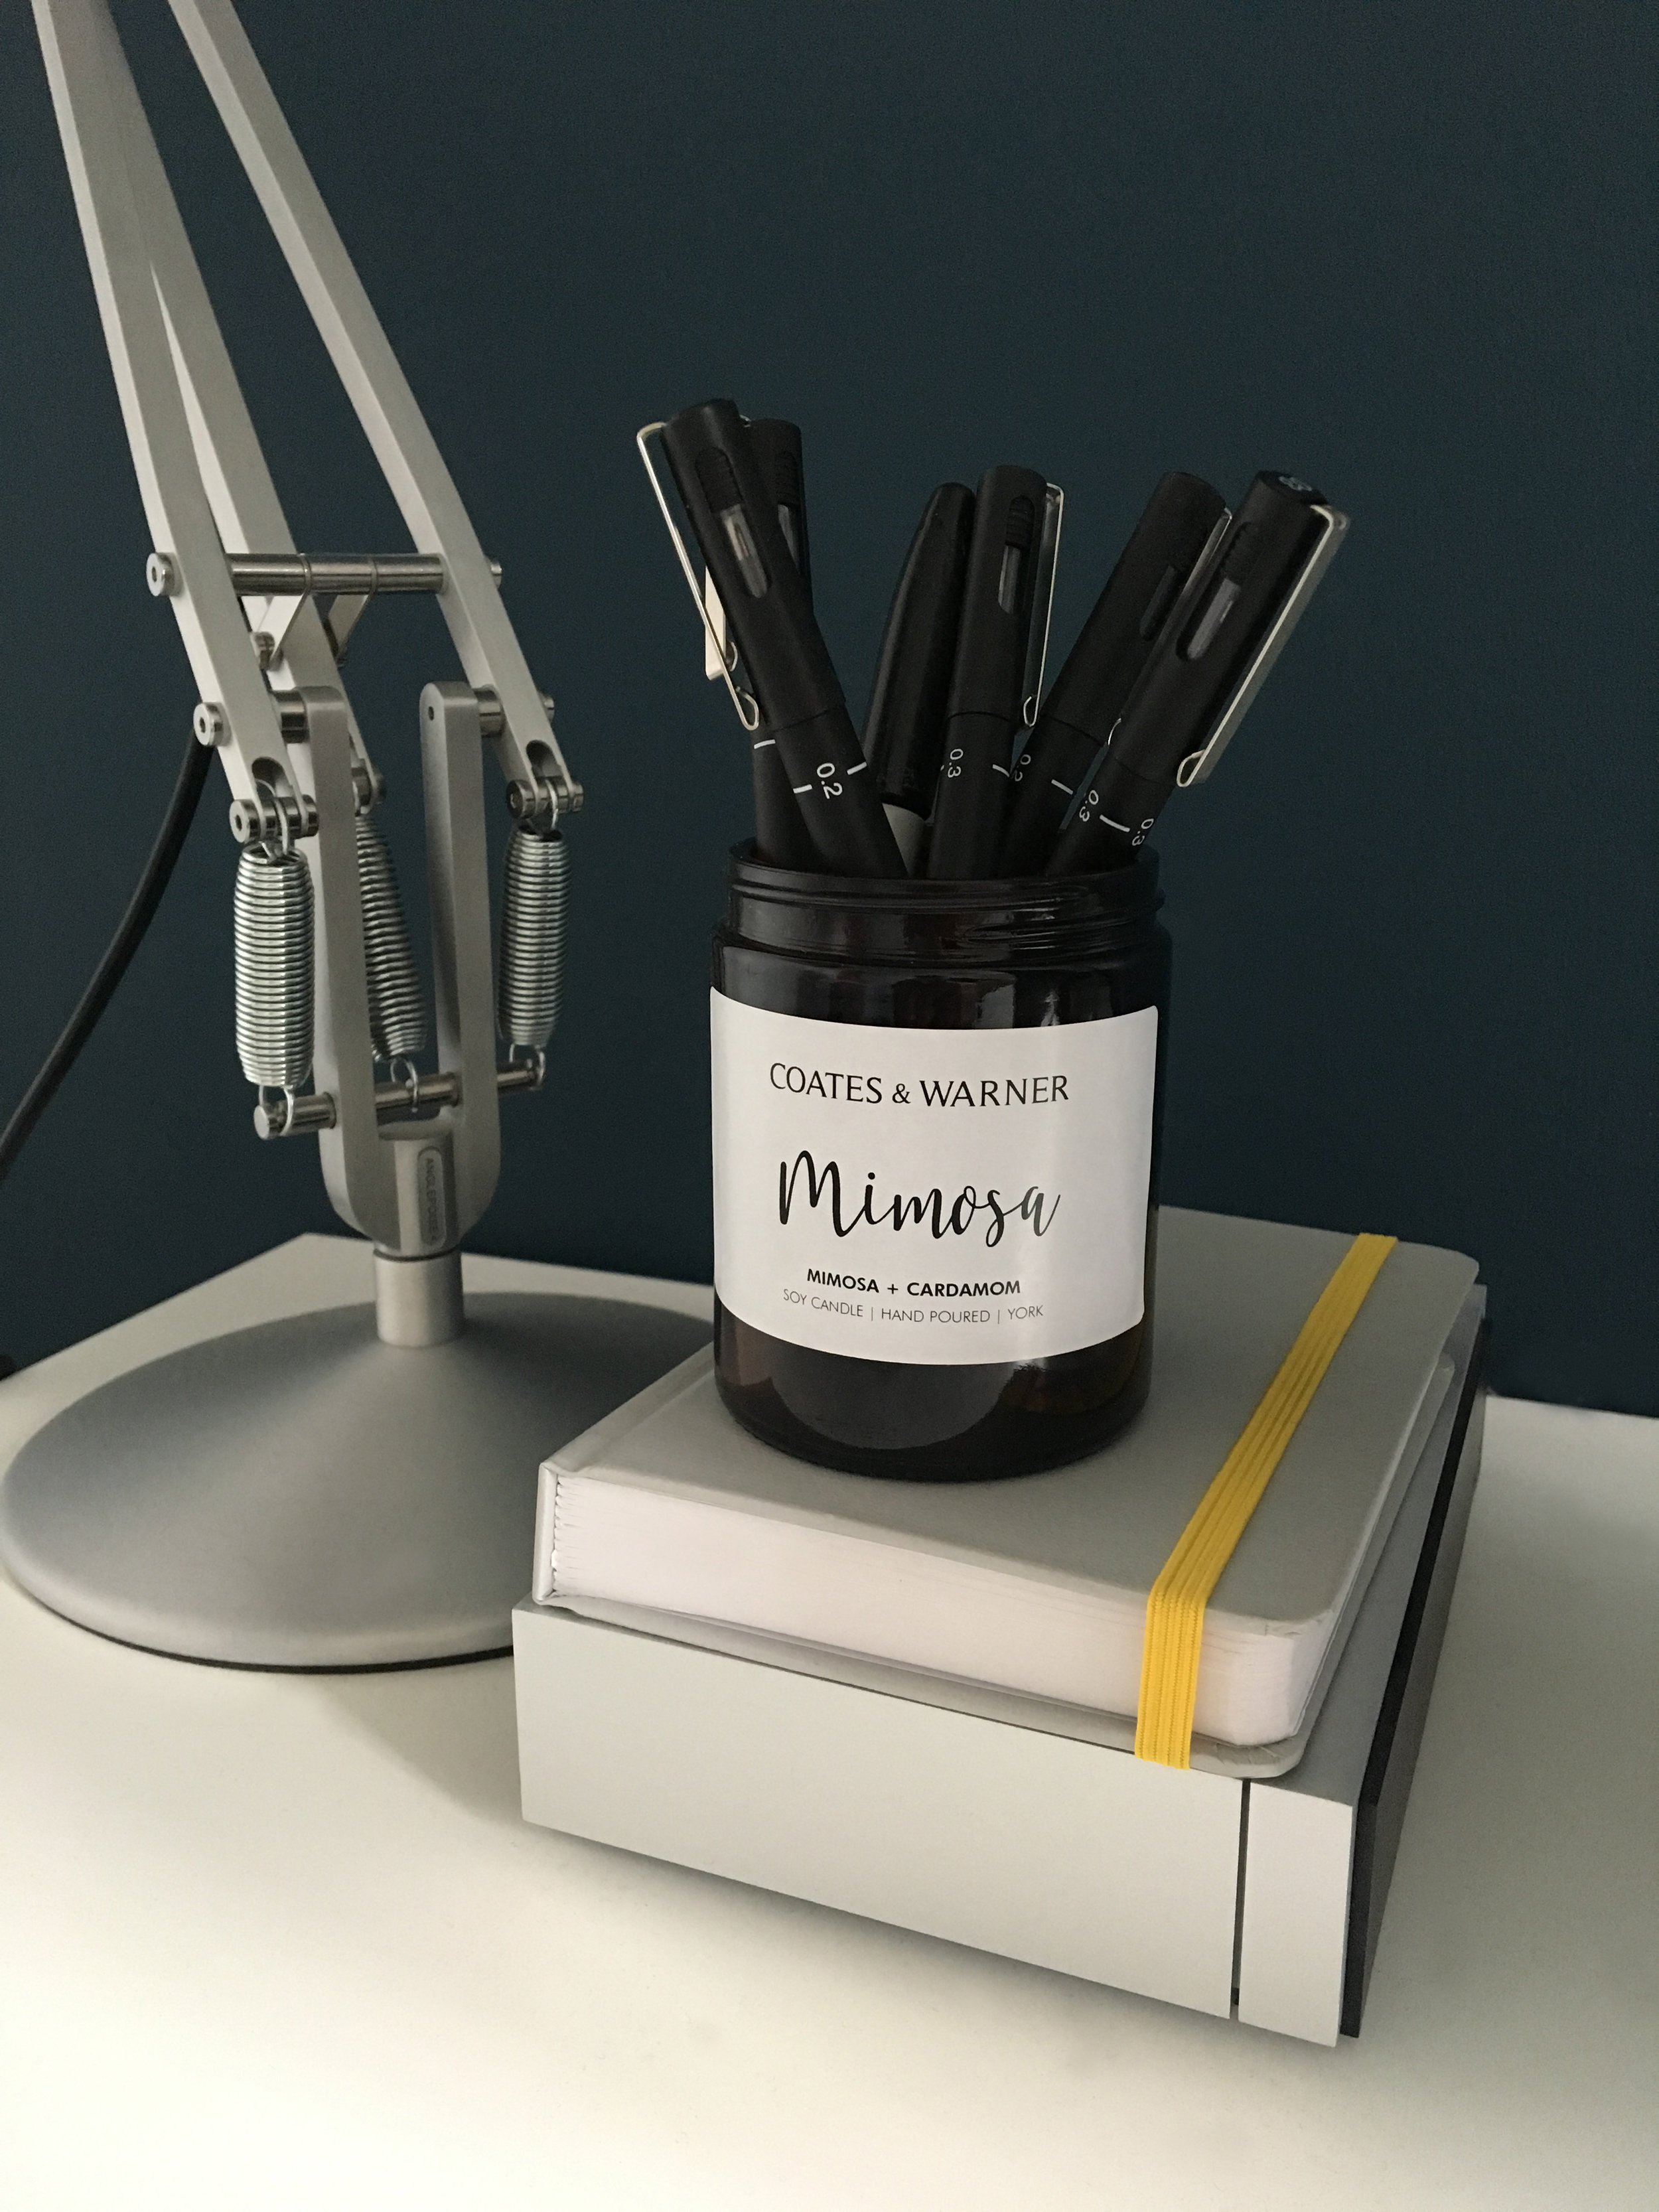 4. Desktop Tidy - Need a little tidy up at your desk? Keep your pens and pencils organised with our candle jars!